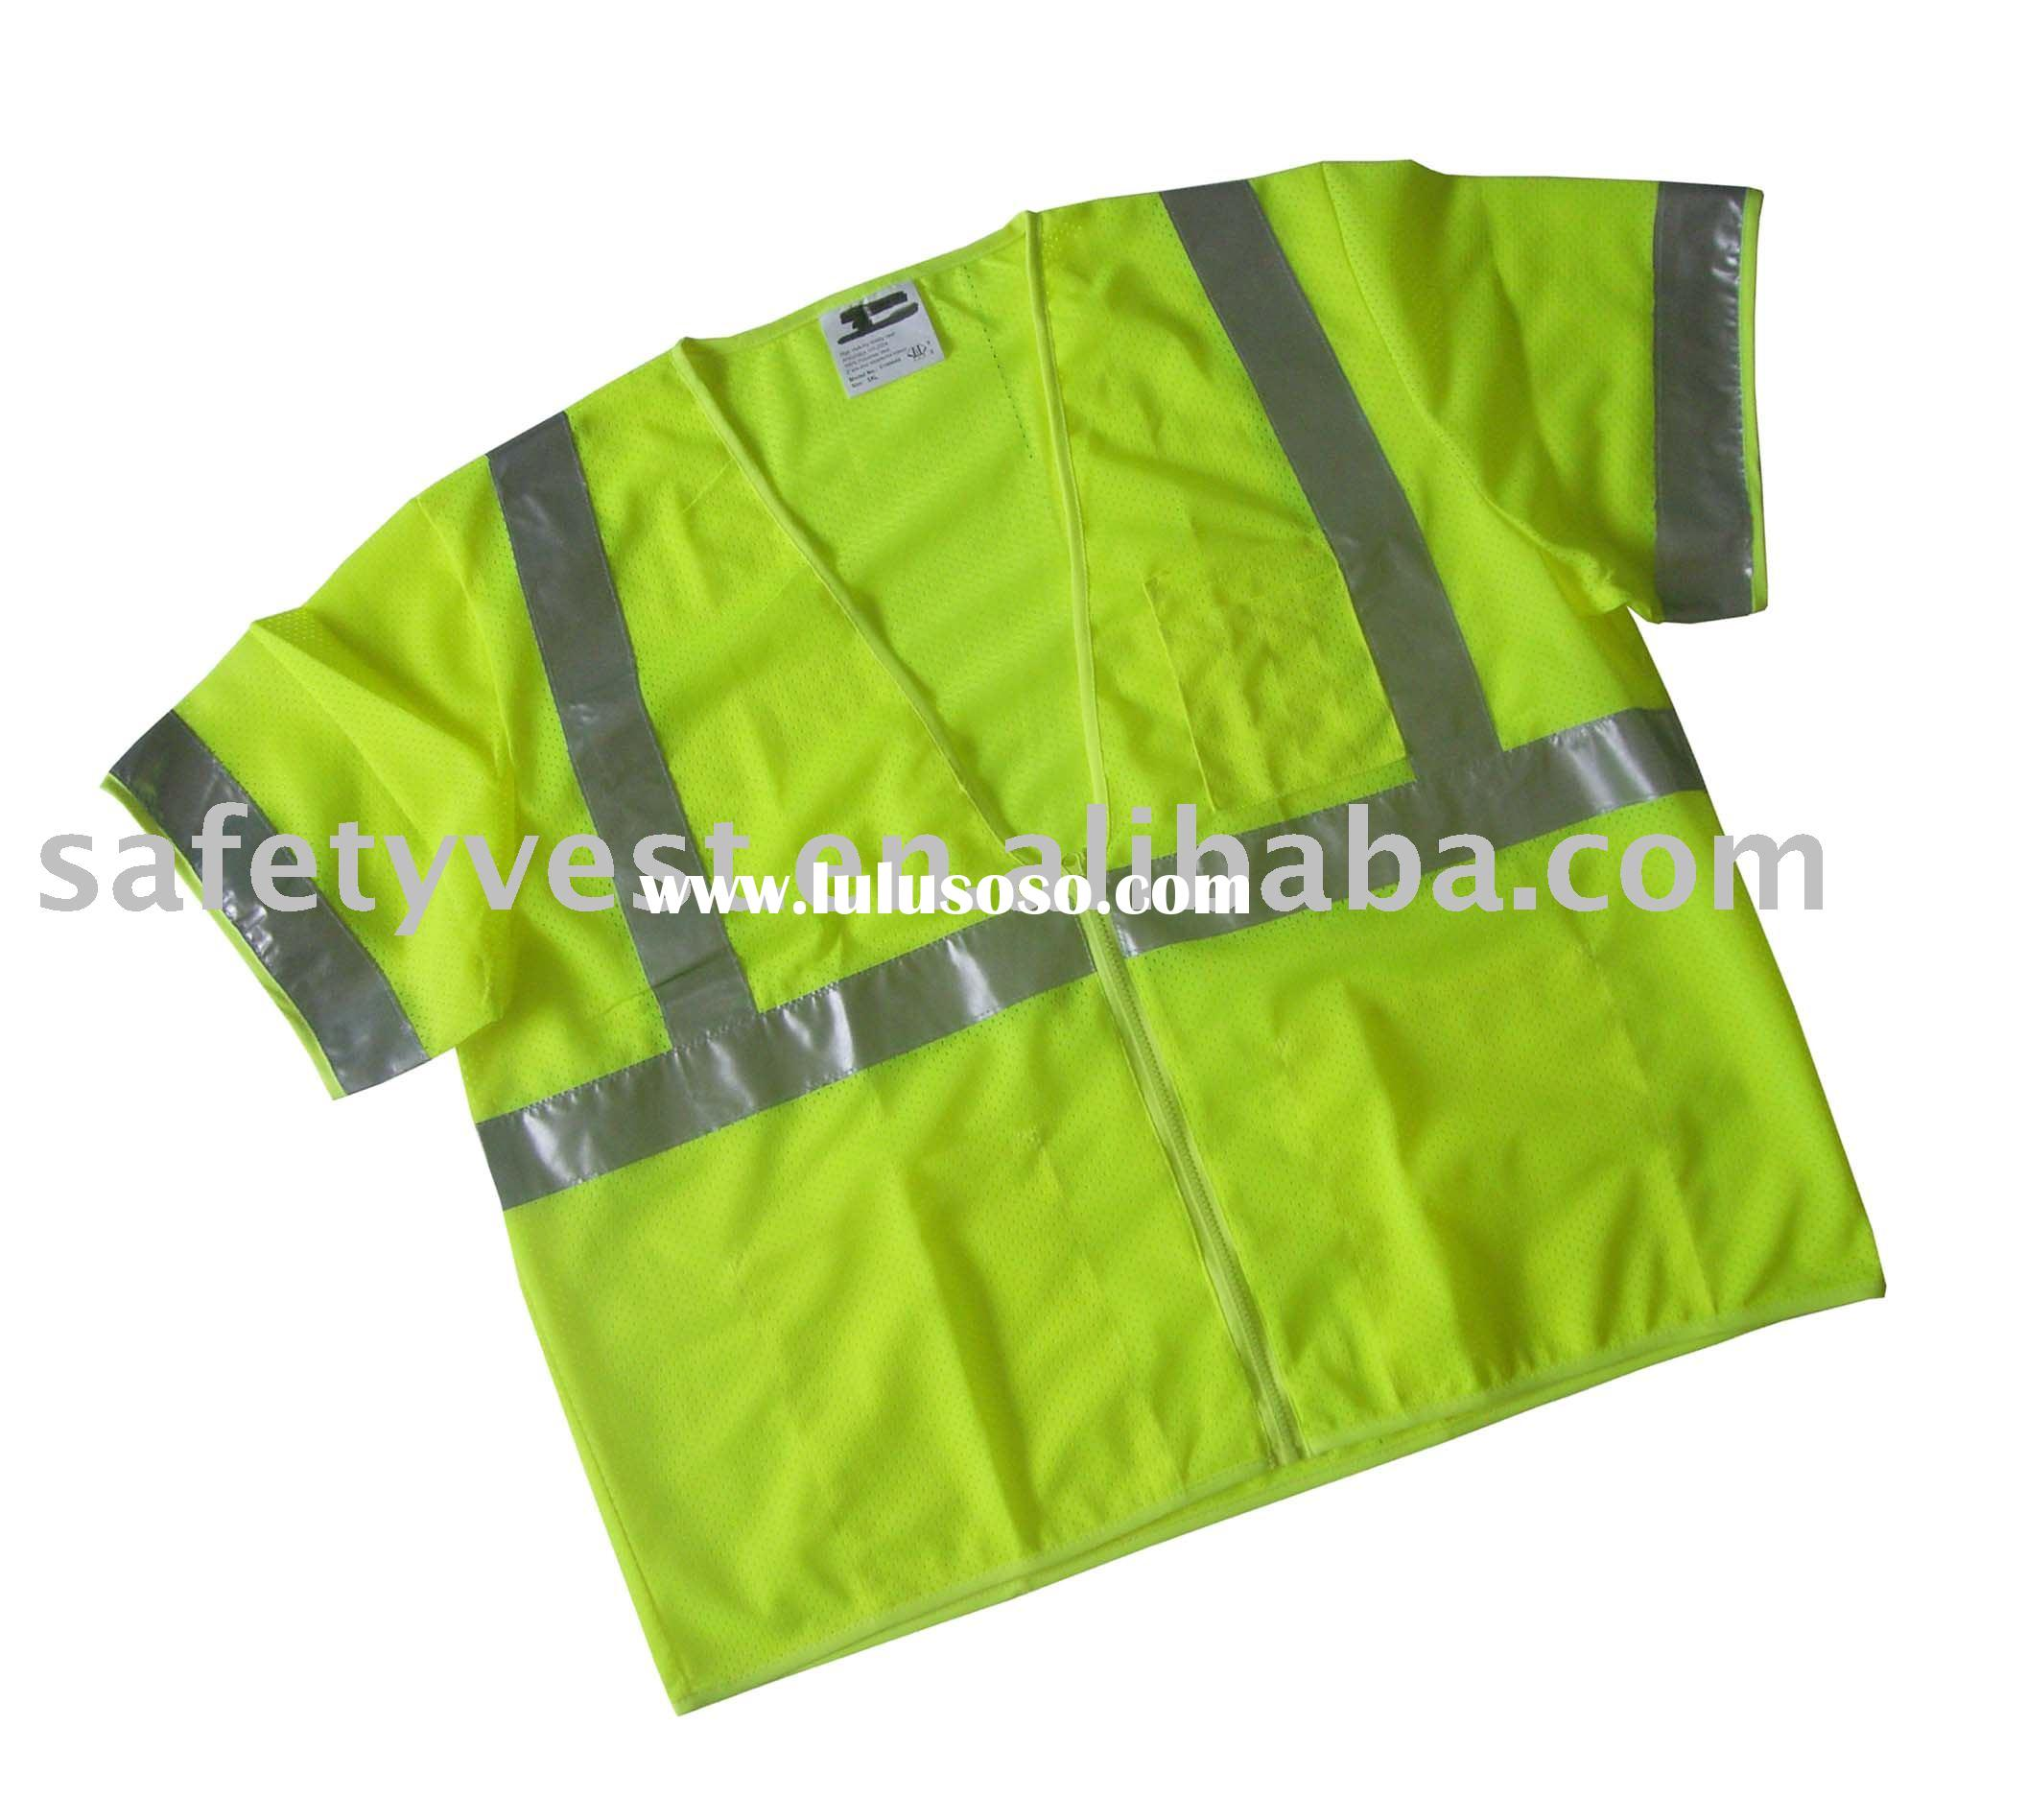 reflective safety vest for work cloth